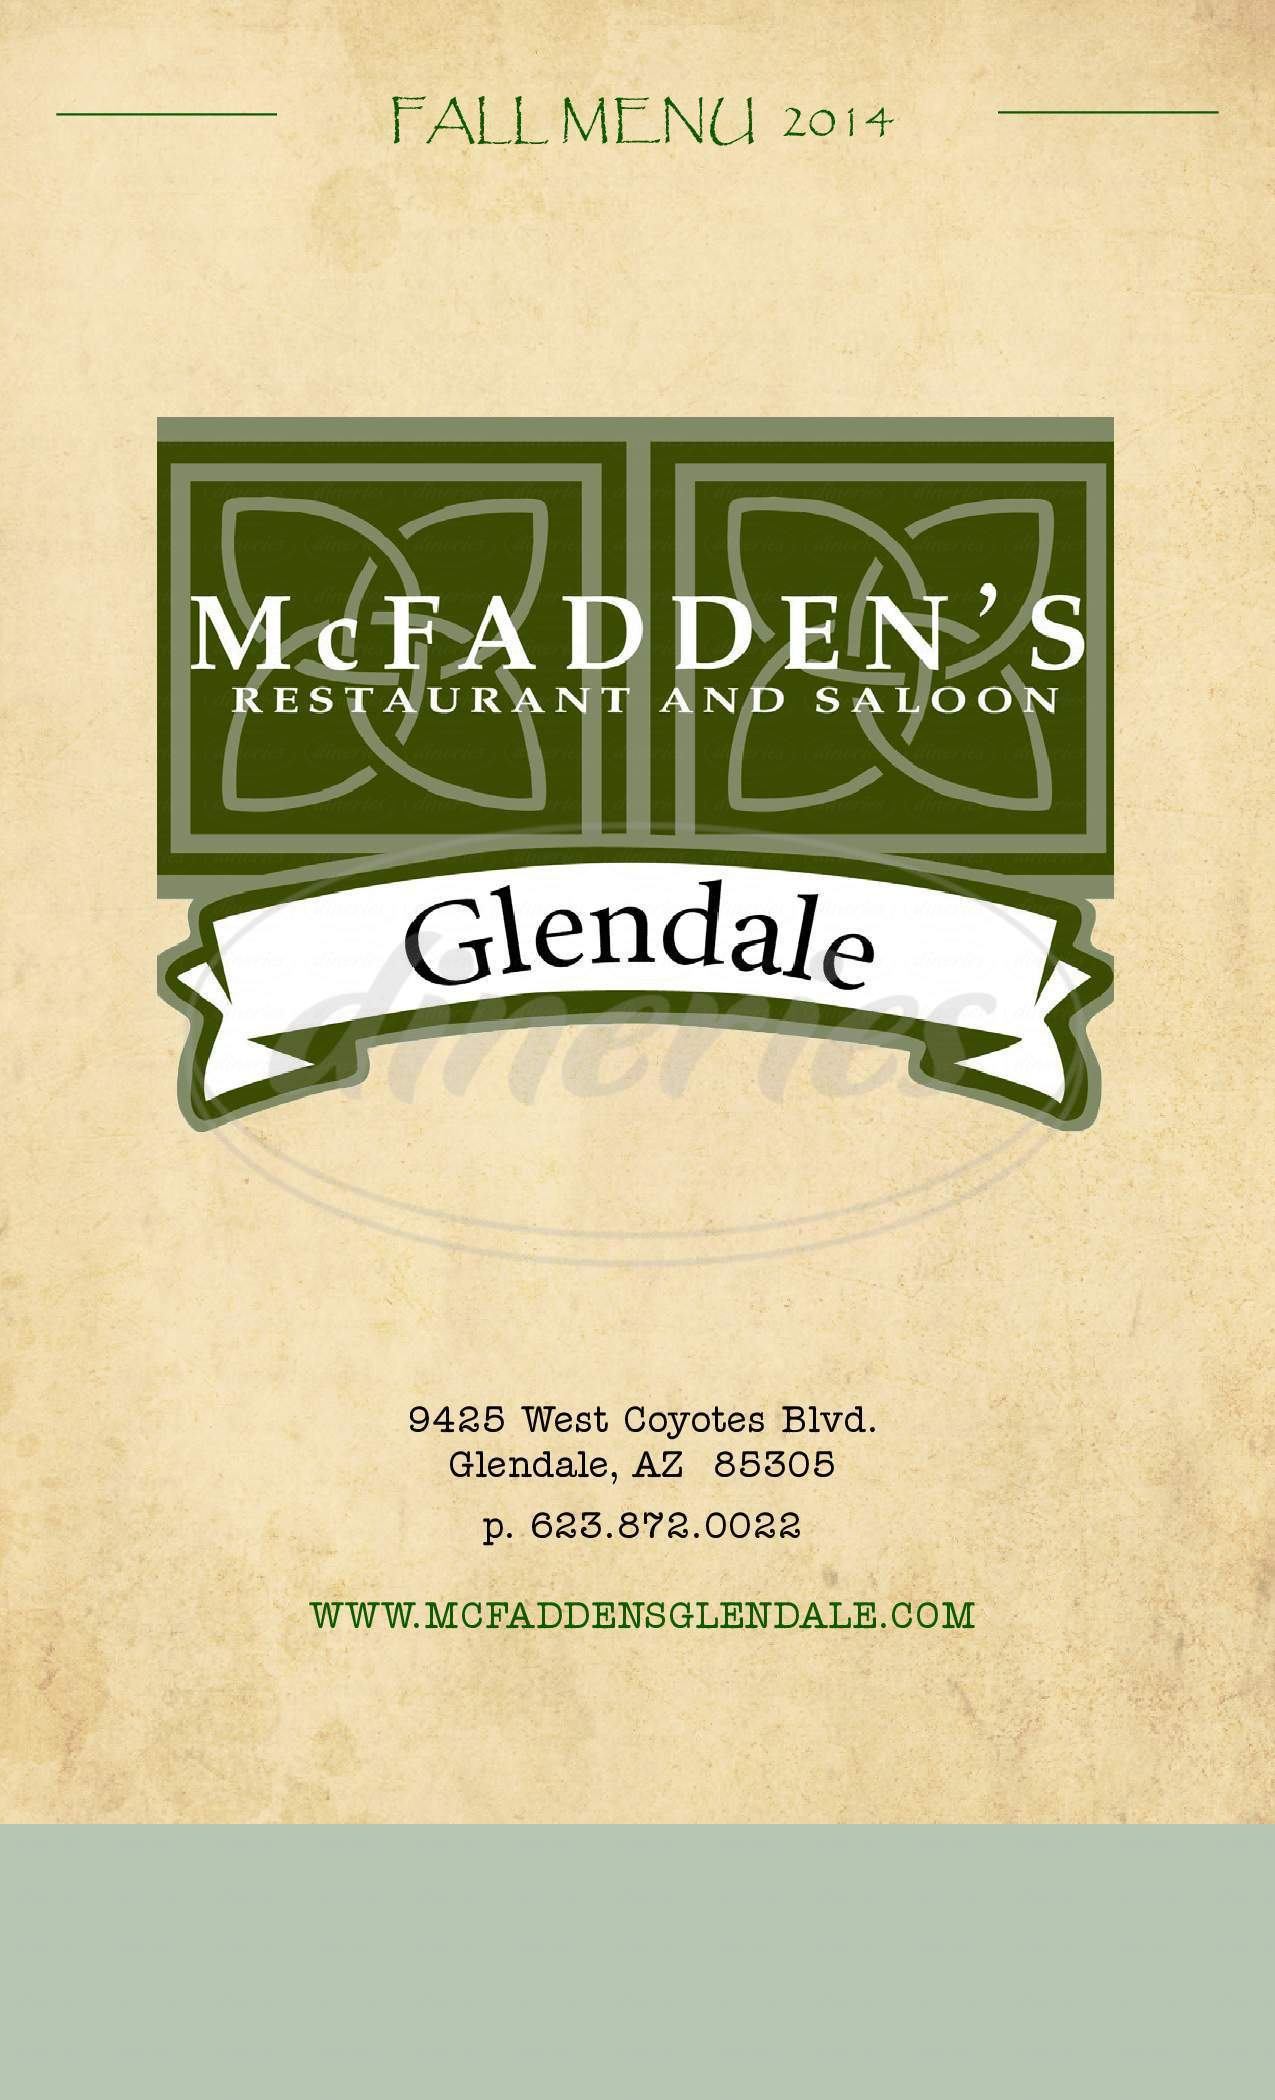 menu for McFadden's Restaurant & Saloon